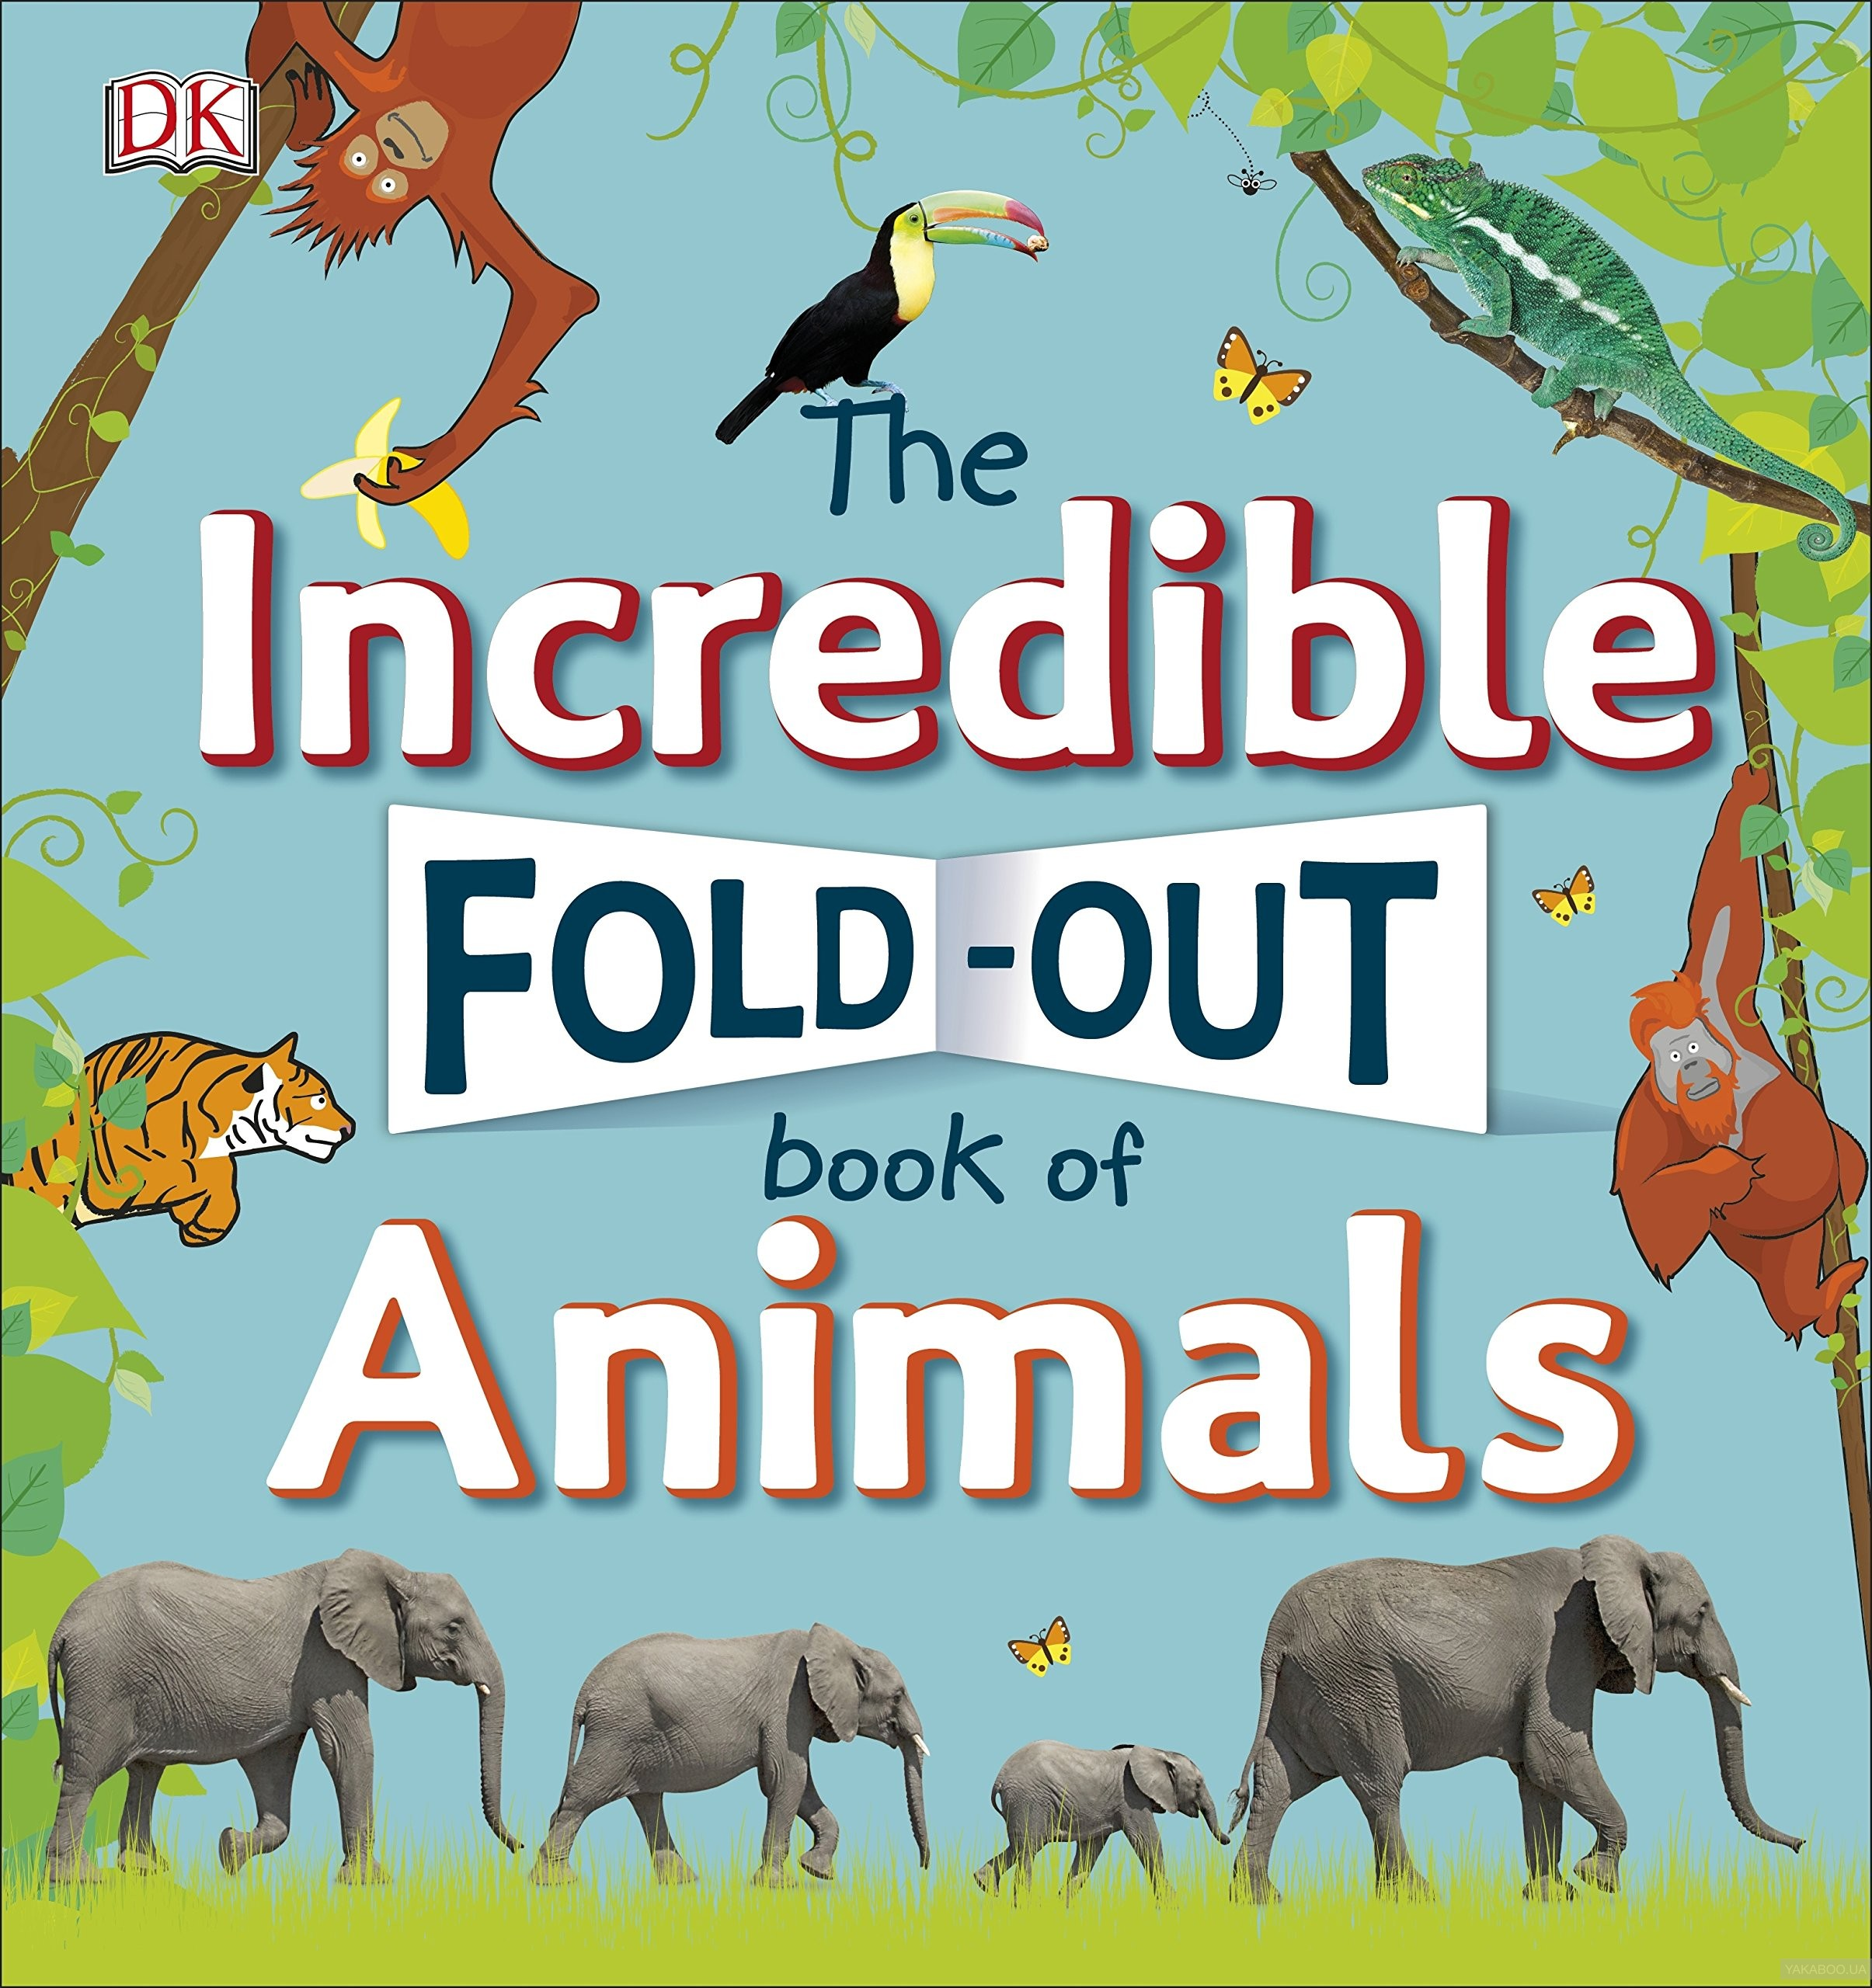 The Incredible Fold-Out Book of Animals, Дорлинг Киндерсли, 9780241276372  - купить